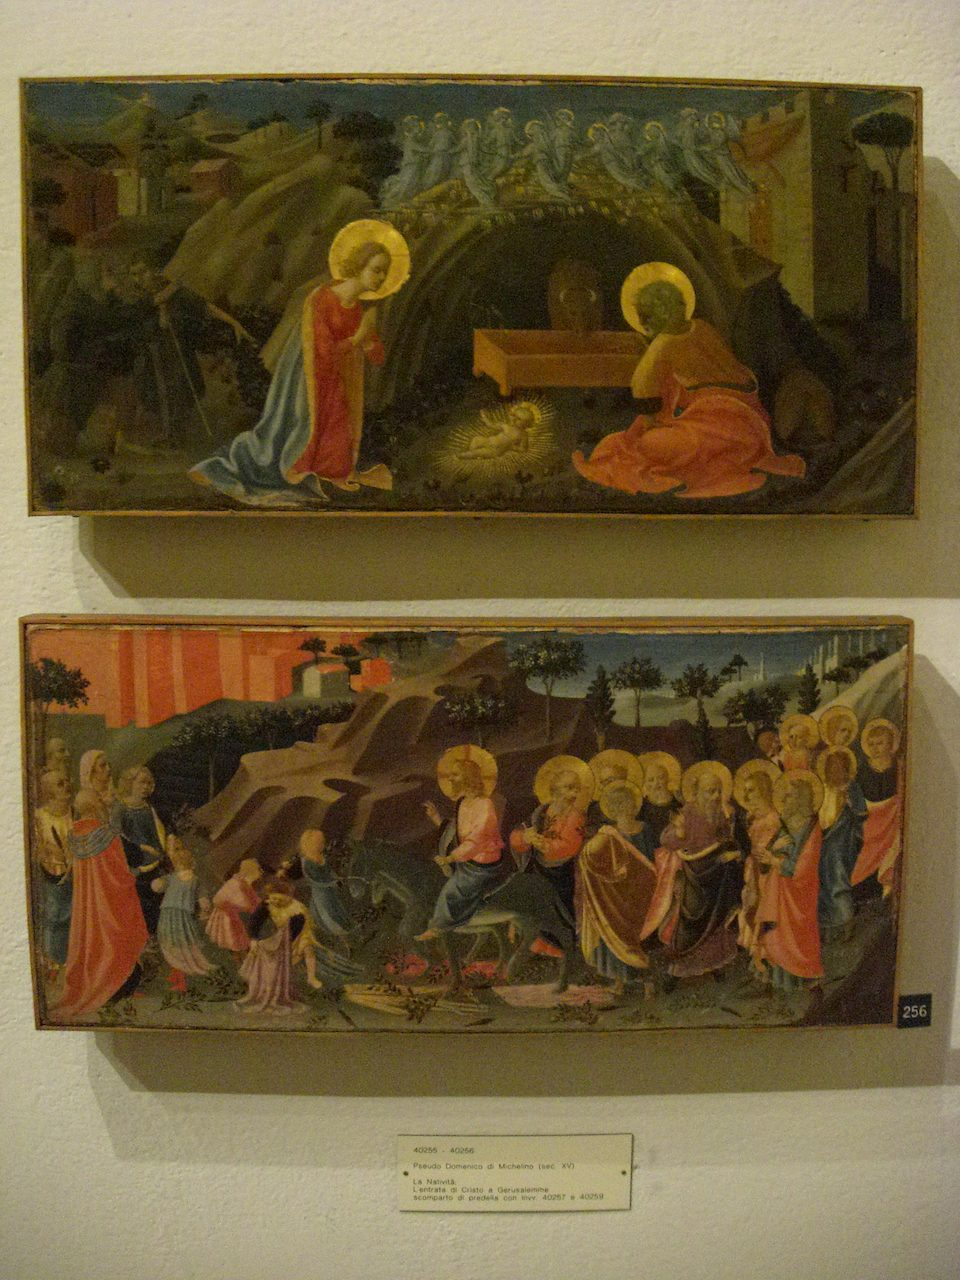 Vatican Museum Pinacoteca (Art Gallery): The Nativity